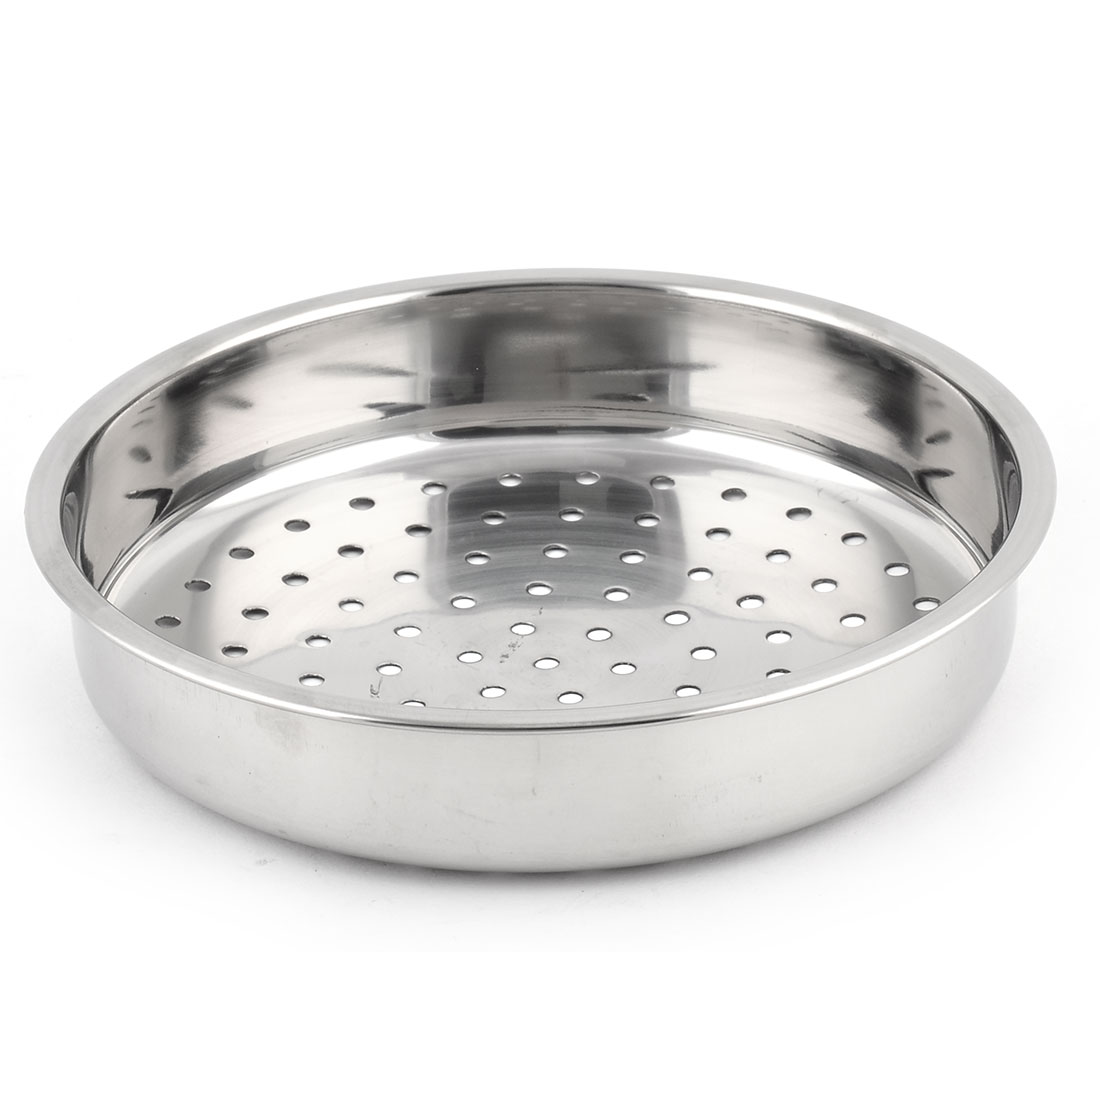 Stainless Steel Round Shaped Hole Cookware Food Cooking Steamer Rack 21cm Dia